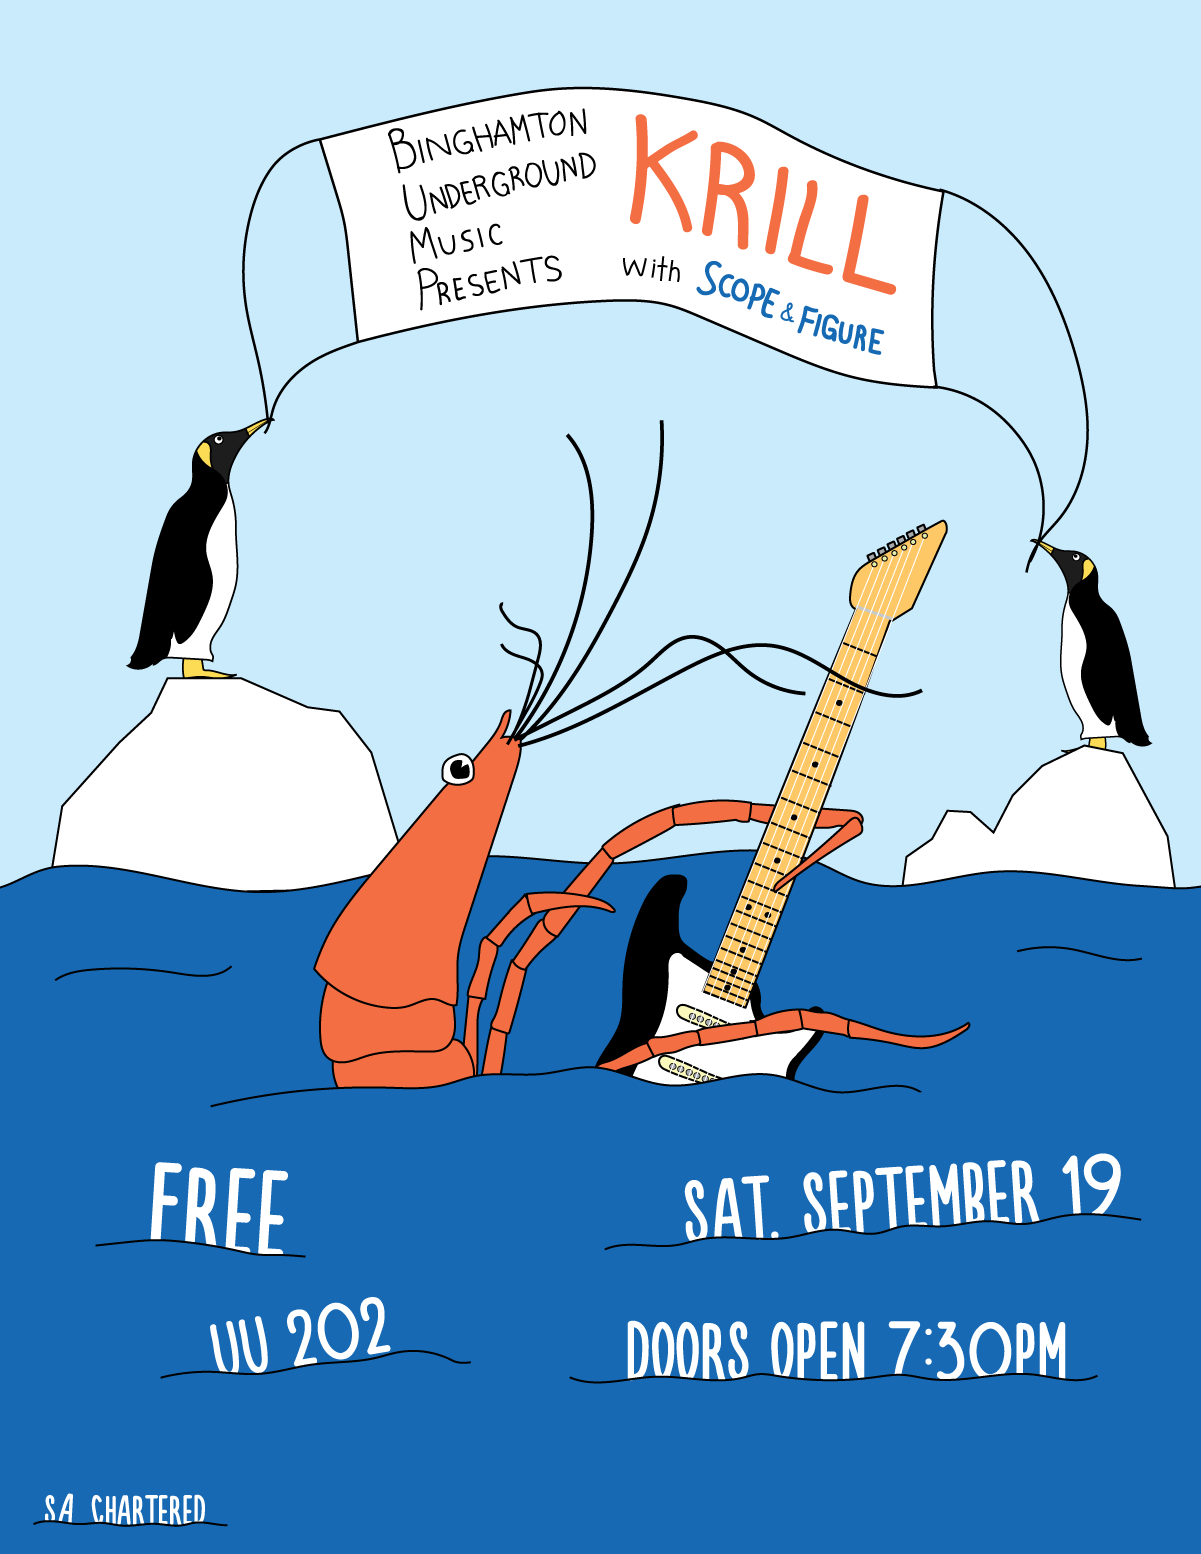 Concert poster for rock band Krill